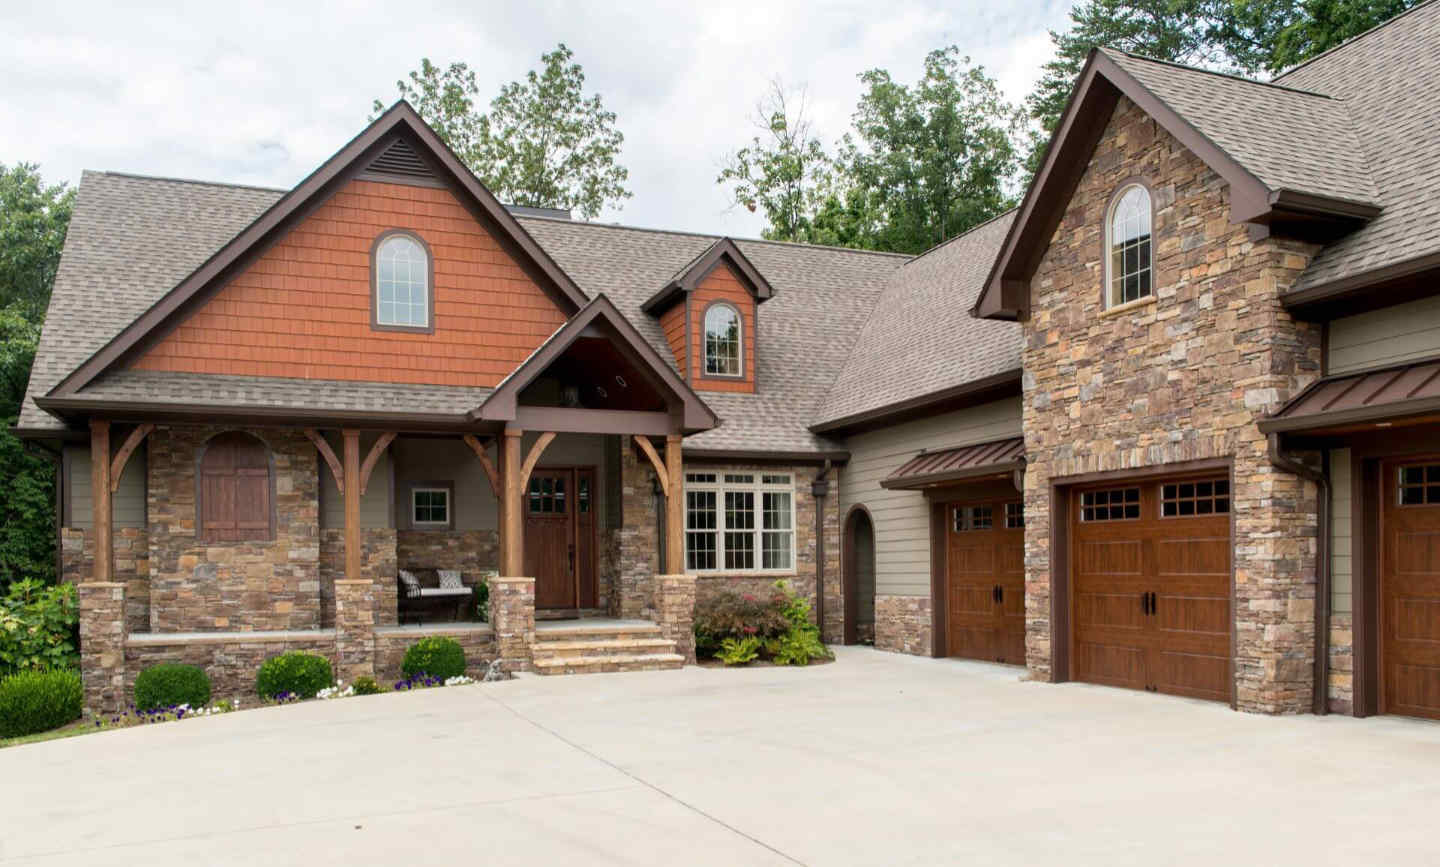 Lovely stone veneer exterior panels are used for siding on this exquisite home.